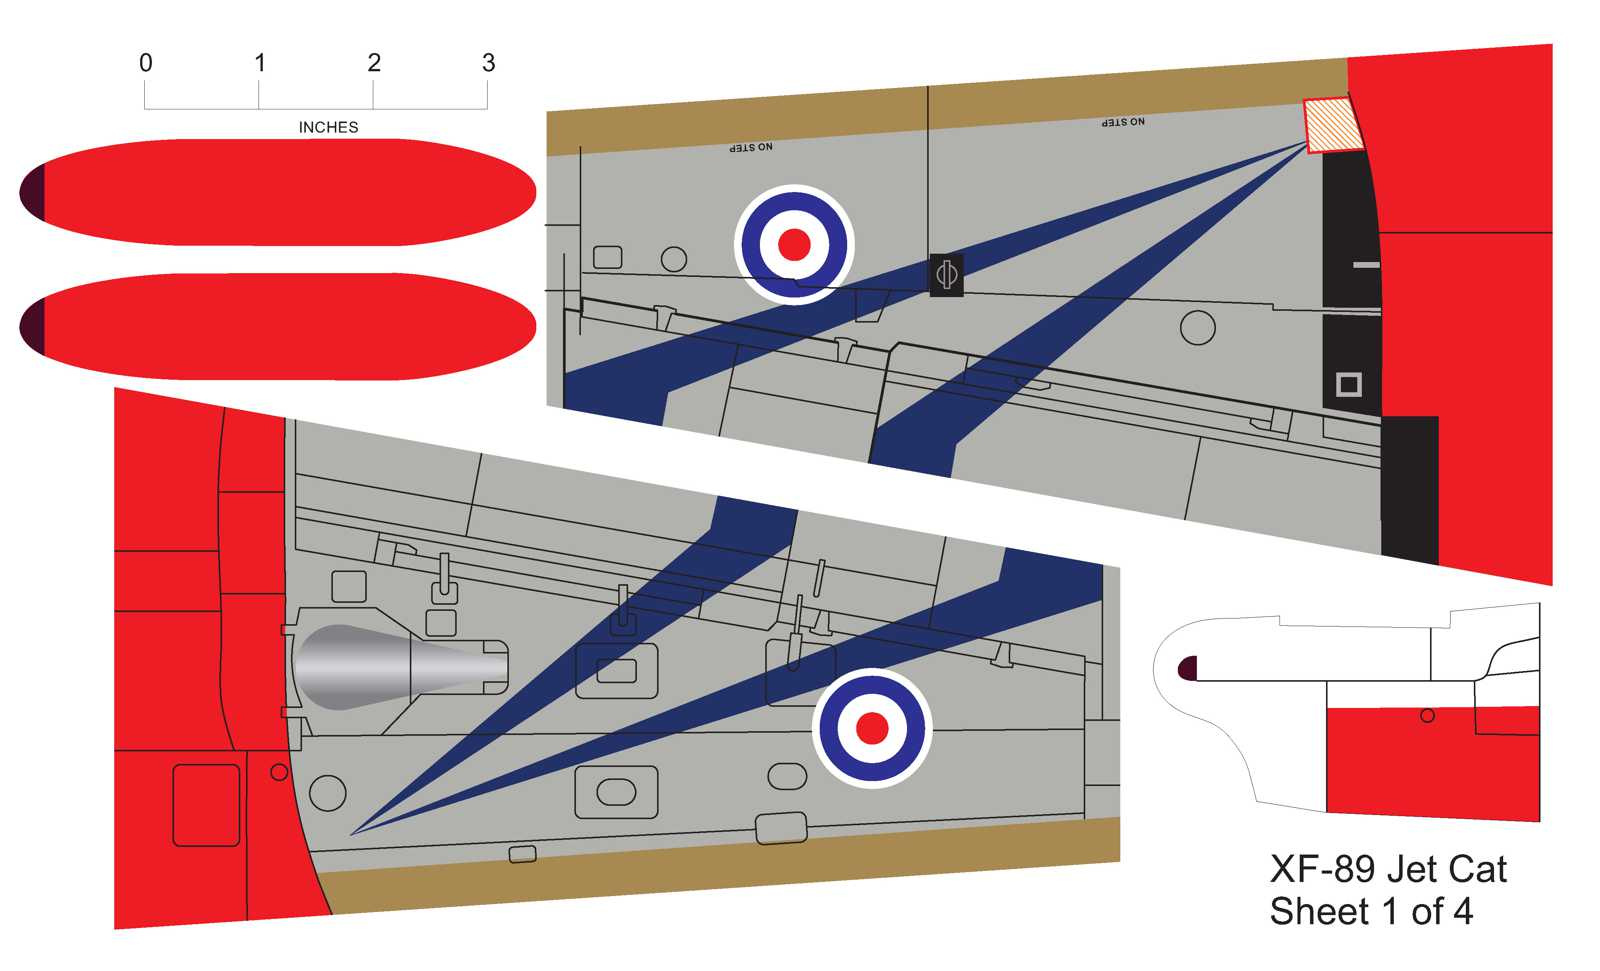 https://0201.nccdn.net/1_2/000/000/142/280/Pages-from-Jet-Provost-covering-layouts-1600x971.jpg